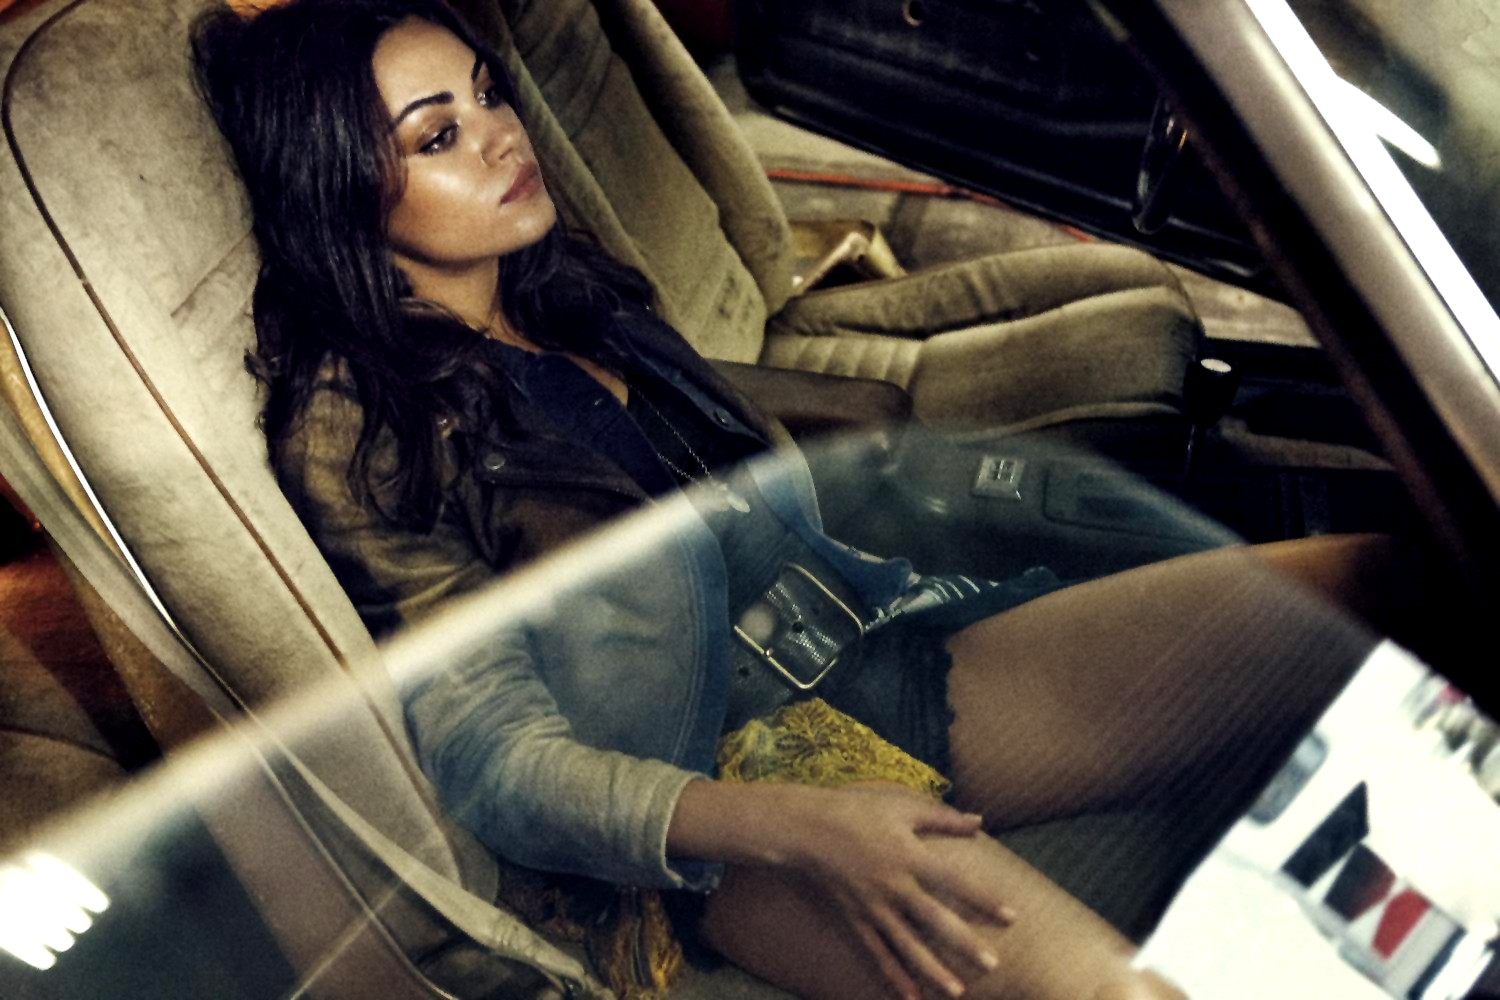 http://1.bp.blogspot.com/--f8ddkzX9sI/UAw1tp2GX0I/AAAAAAAAJtI/-FjSl6so1as/s1600/Mila+Kunis+–+Interview+Magazine+(August+2012)+(4).jpg